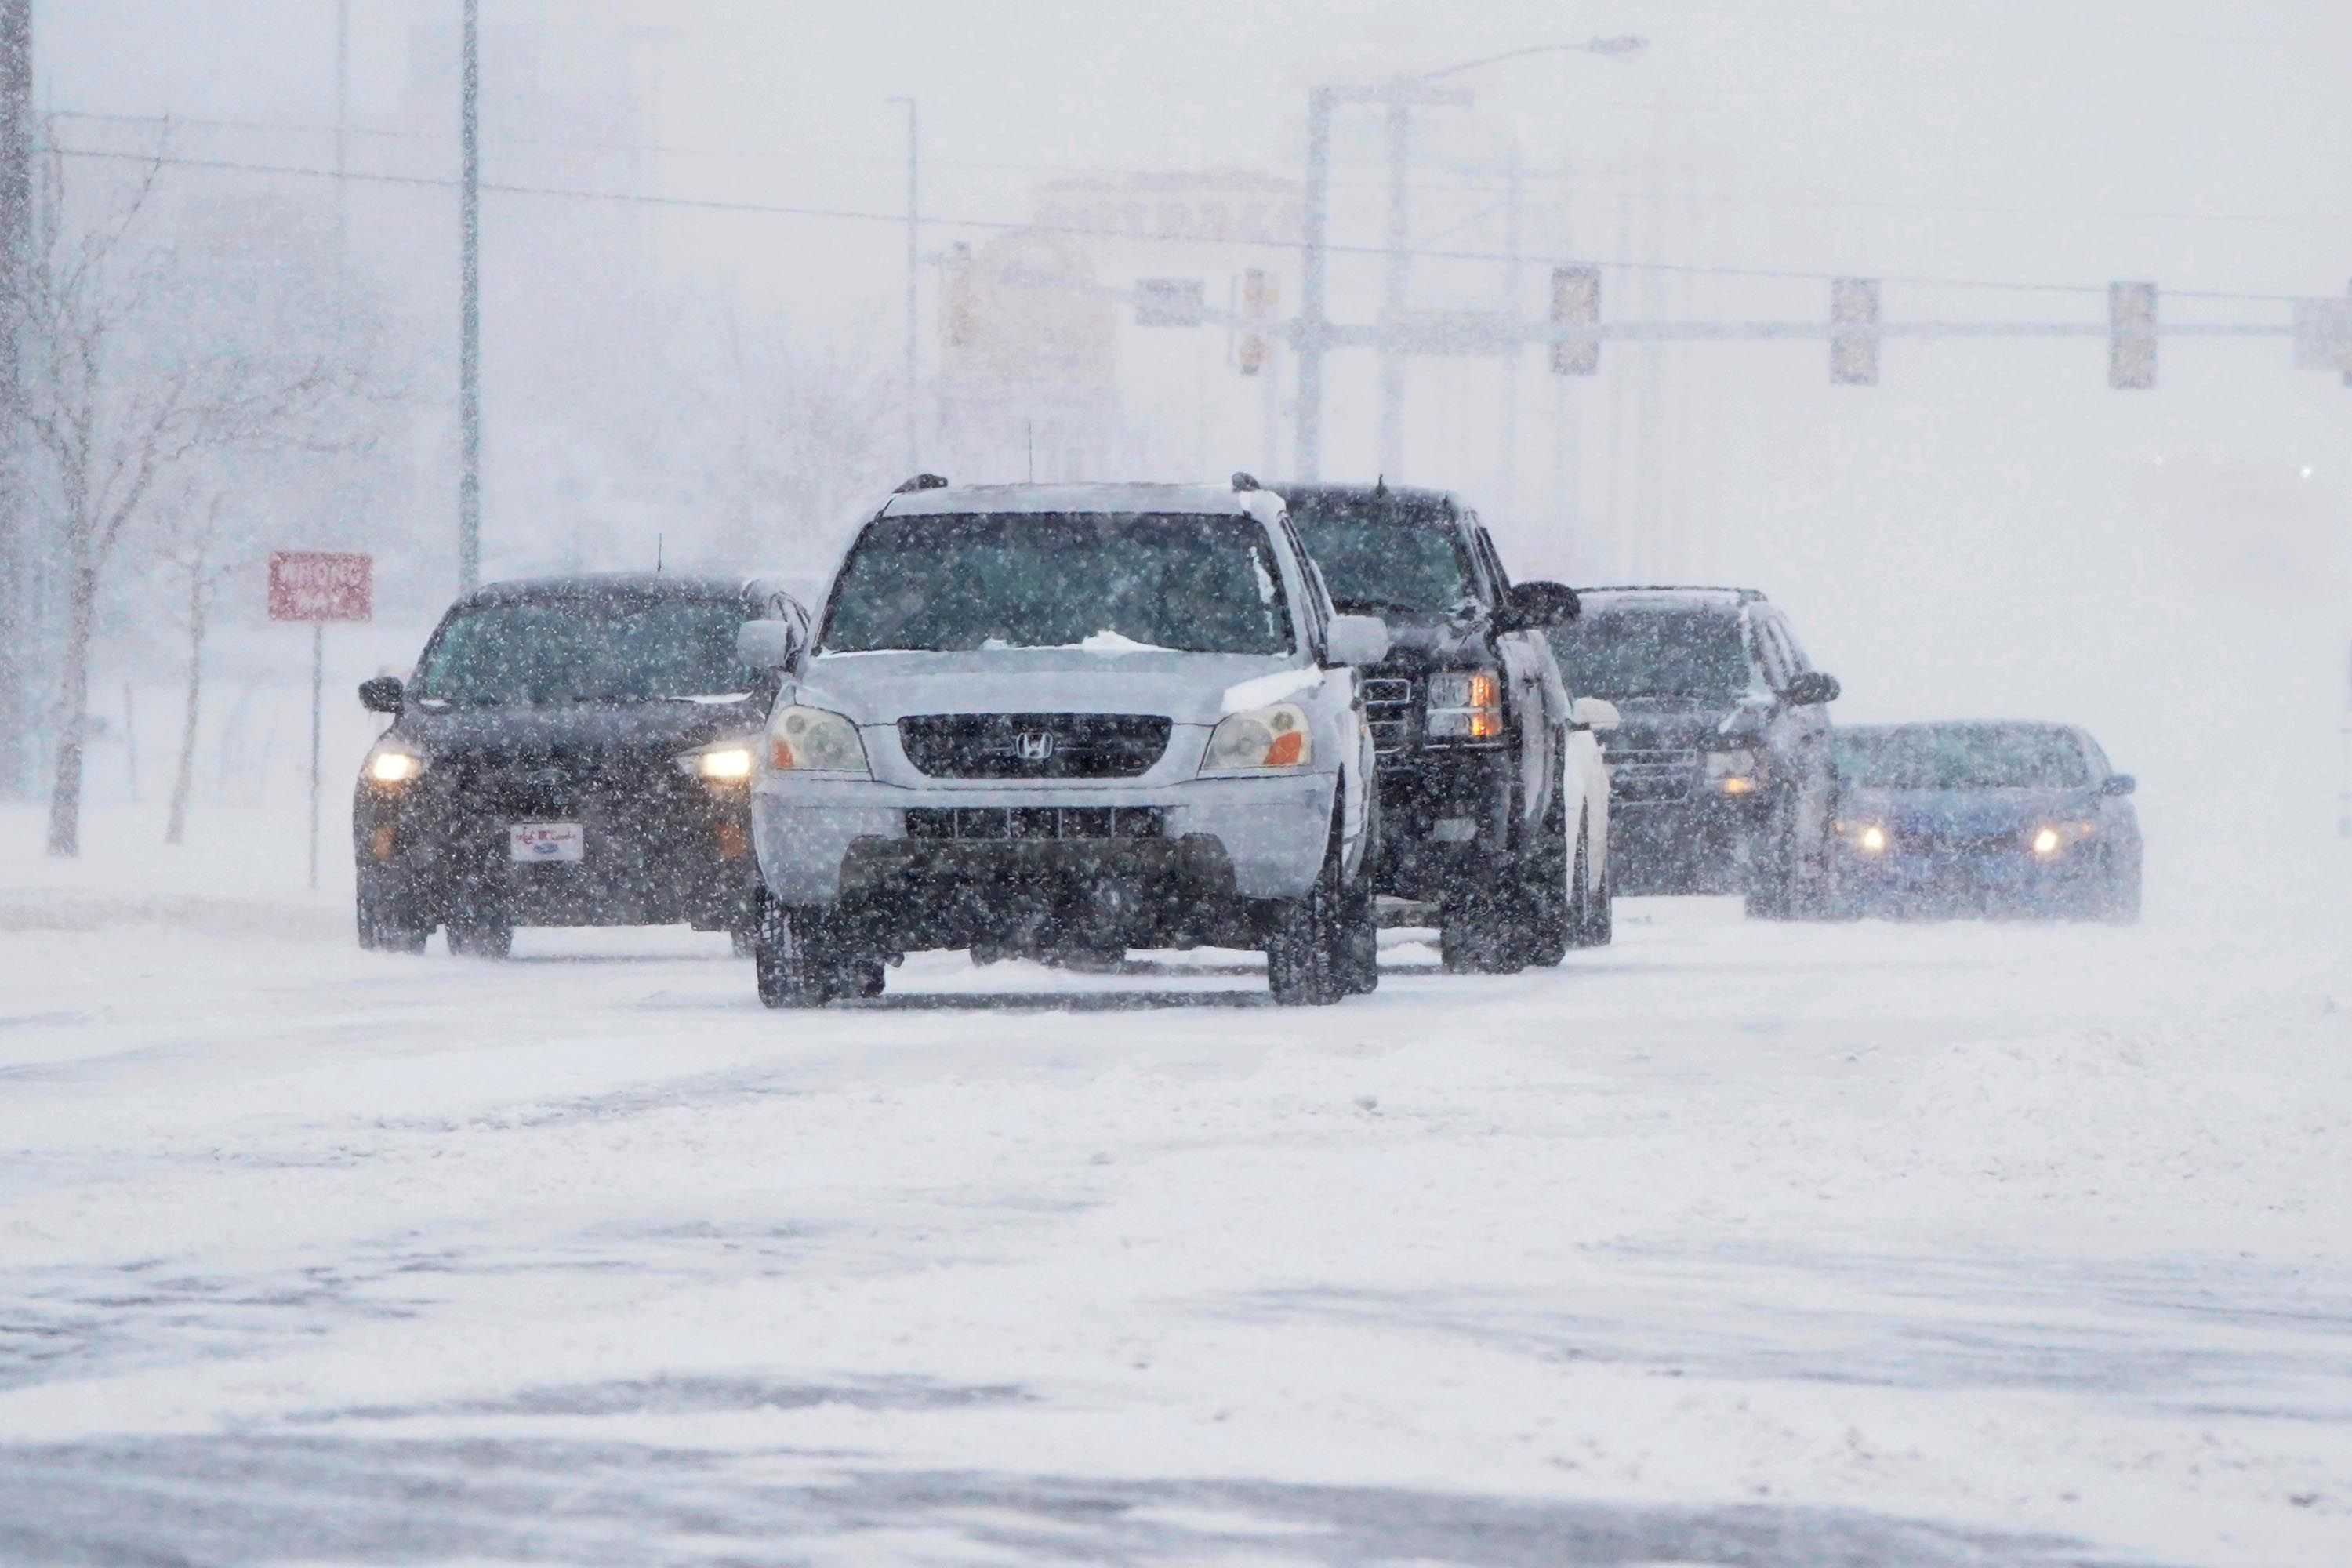 Drivers make their way along a road during a winter storm Sunday, February 14, in Oklahoma City.